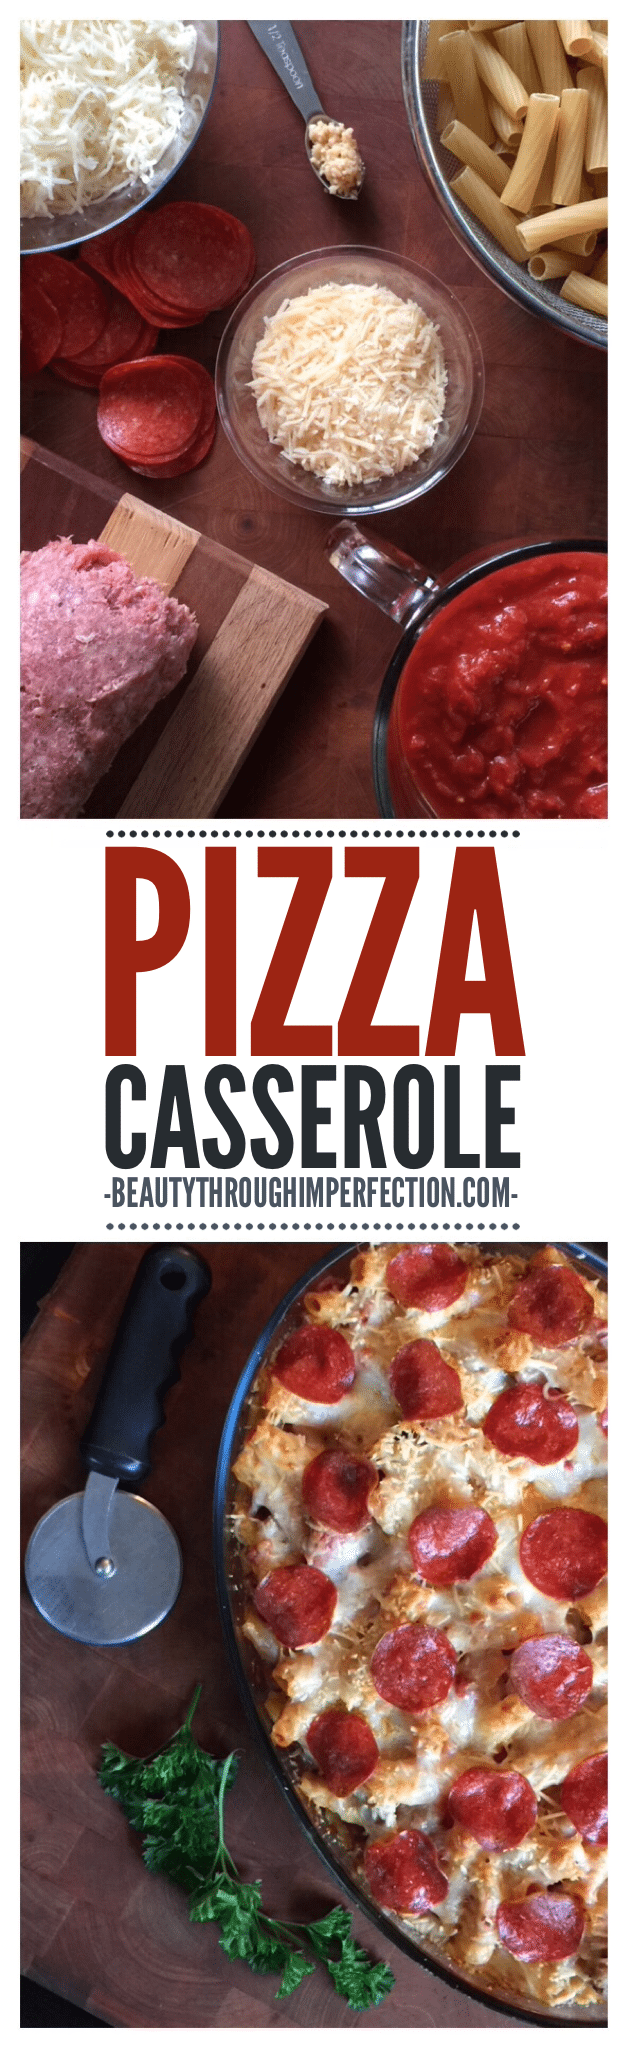 This looks so good and such a simple recipe too! Easy dinner Pizza casserole